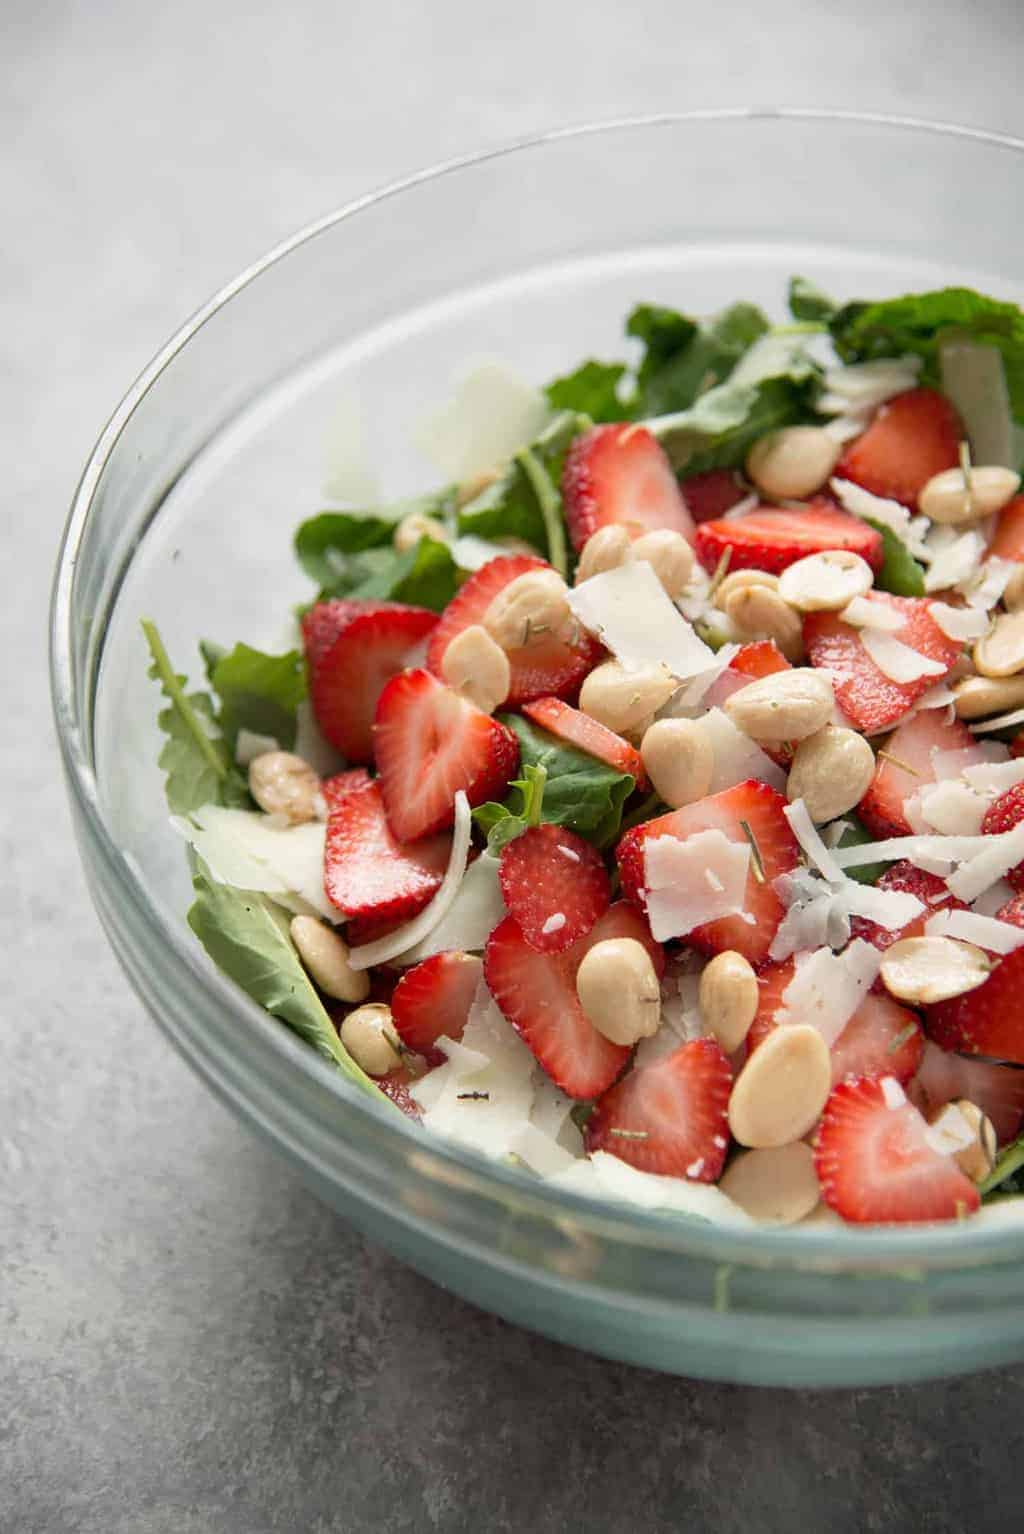 Strawberry Kale Salad with Lavender Dressing. You've gotta try this healthy salad, perfect for summer! This lavender-poppy seed dressing is so delicious, it's great on everything. Vegetarian and Gluten-free | www.delishknowledge.com